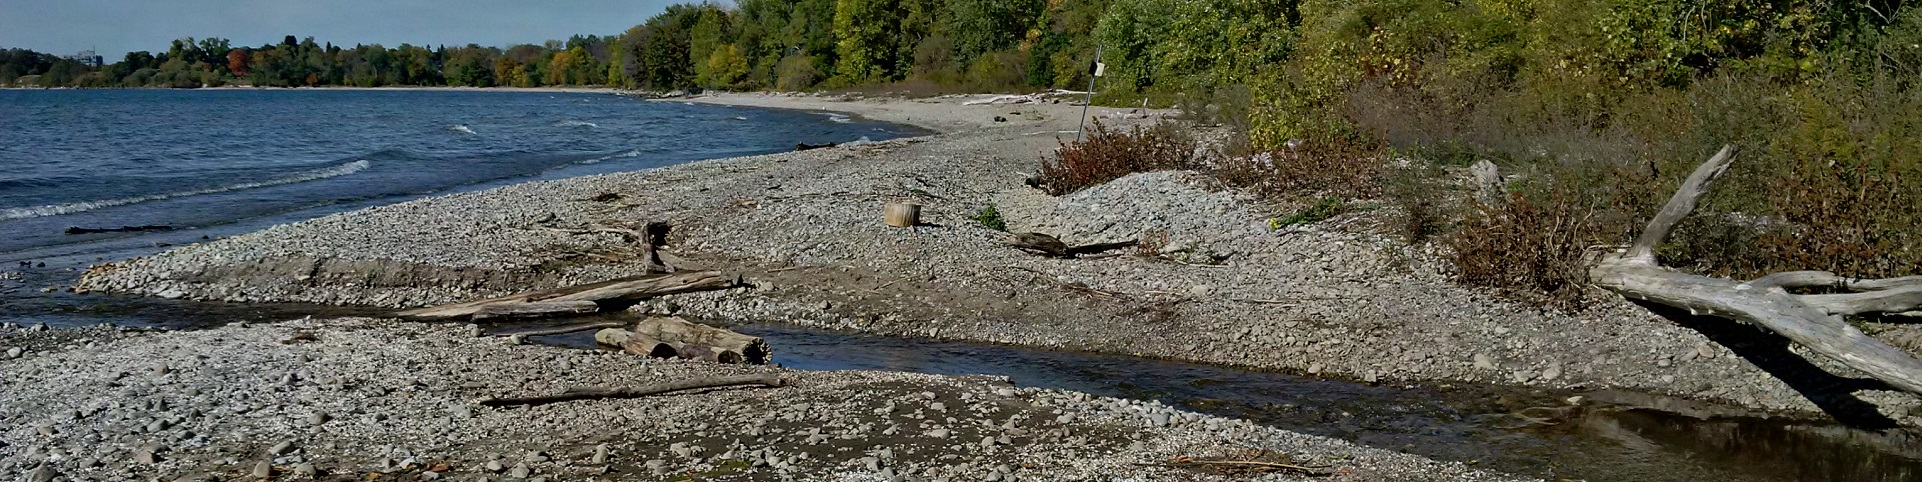 mouth of Carruthers Creek